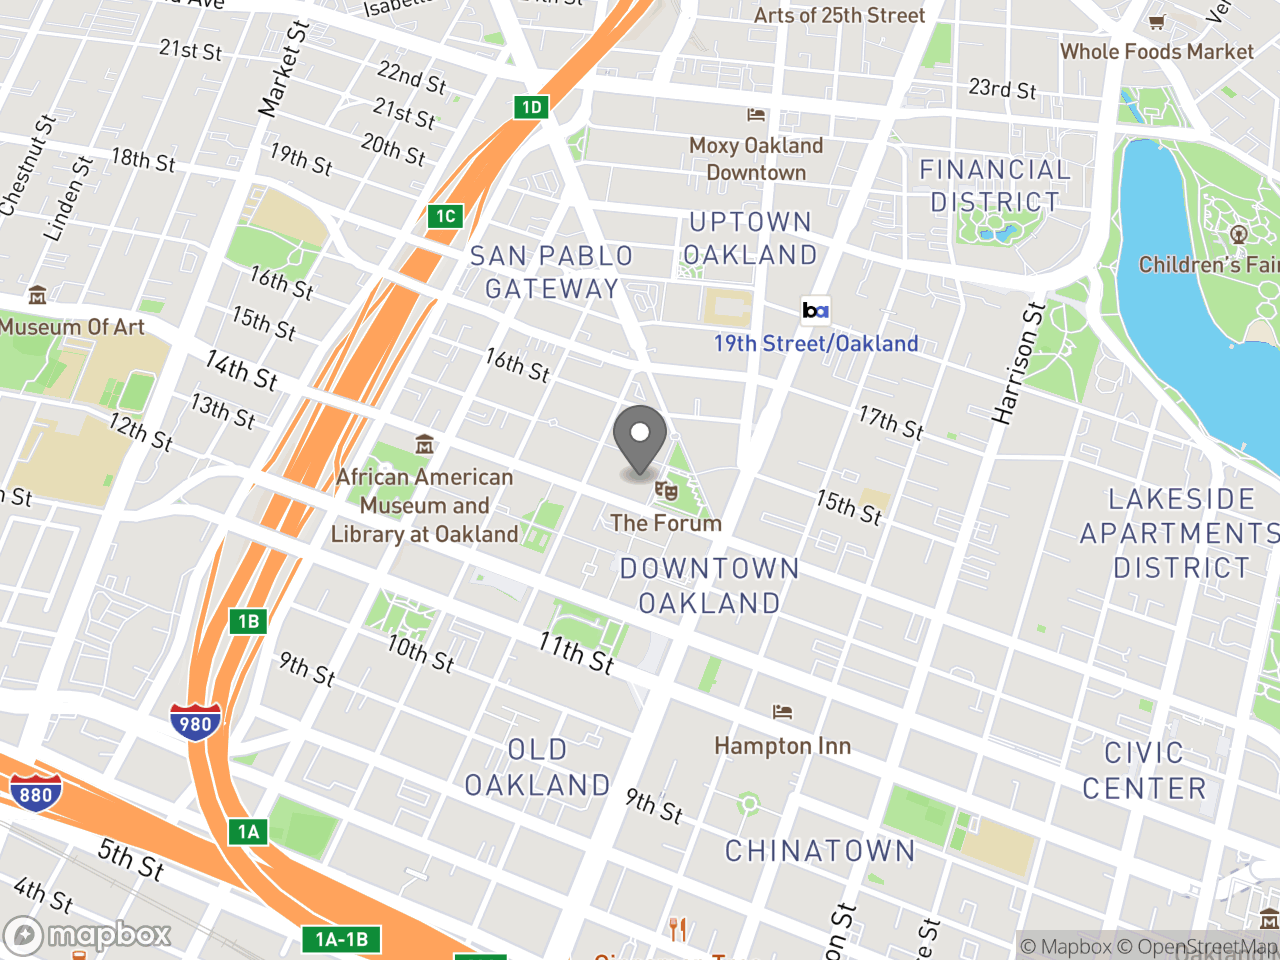 Map location for October 3, 2019 Community Advisory Group Meeting (Zoning Incentive Program), located at 1 Frank H Ogawa Plaza in Oakland, CA 94612